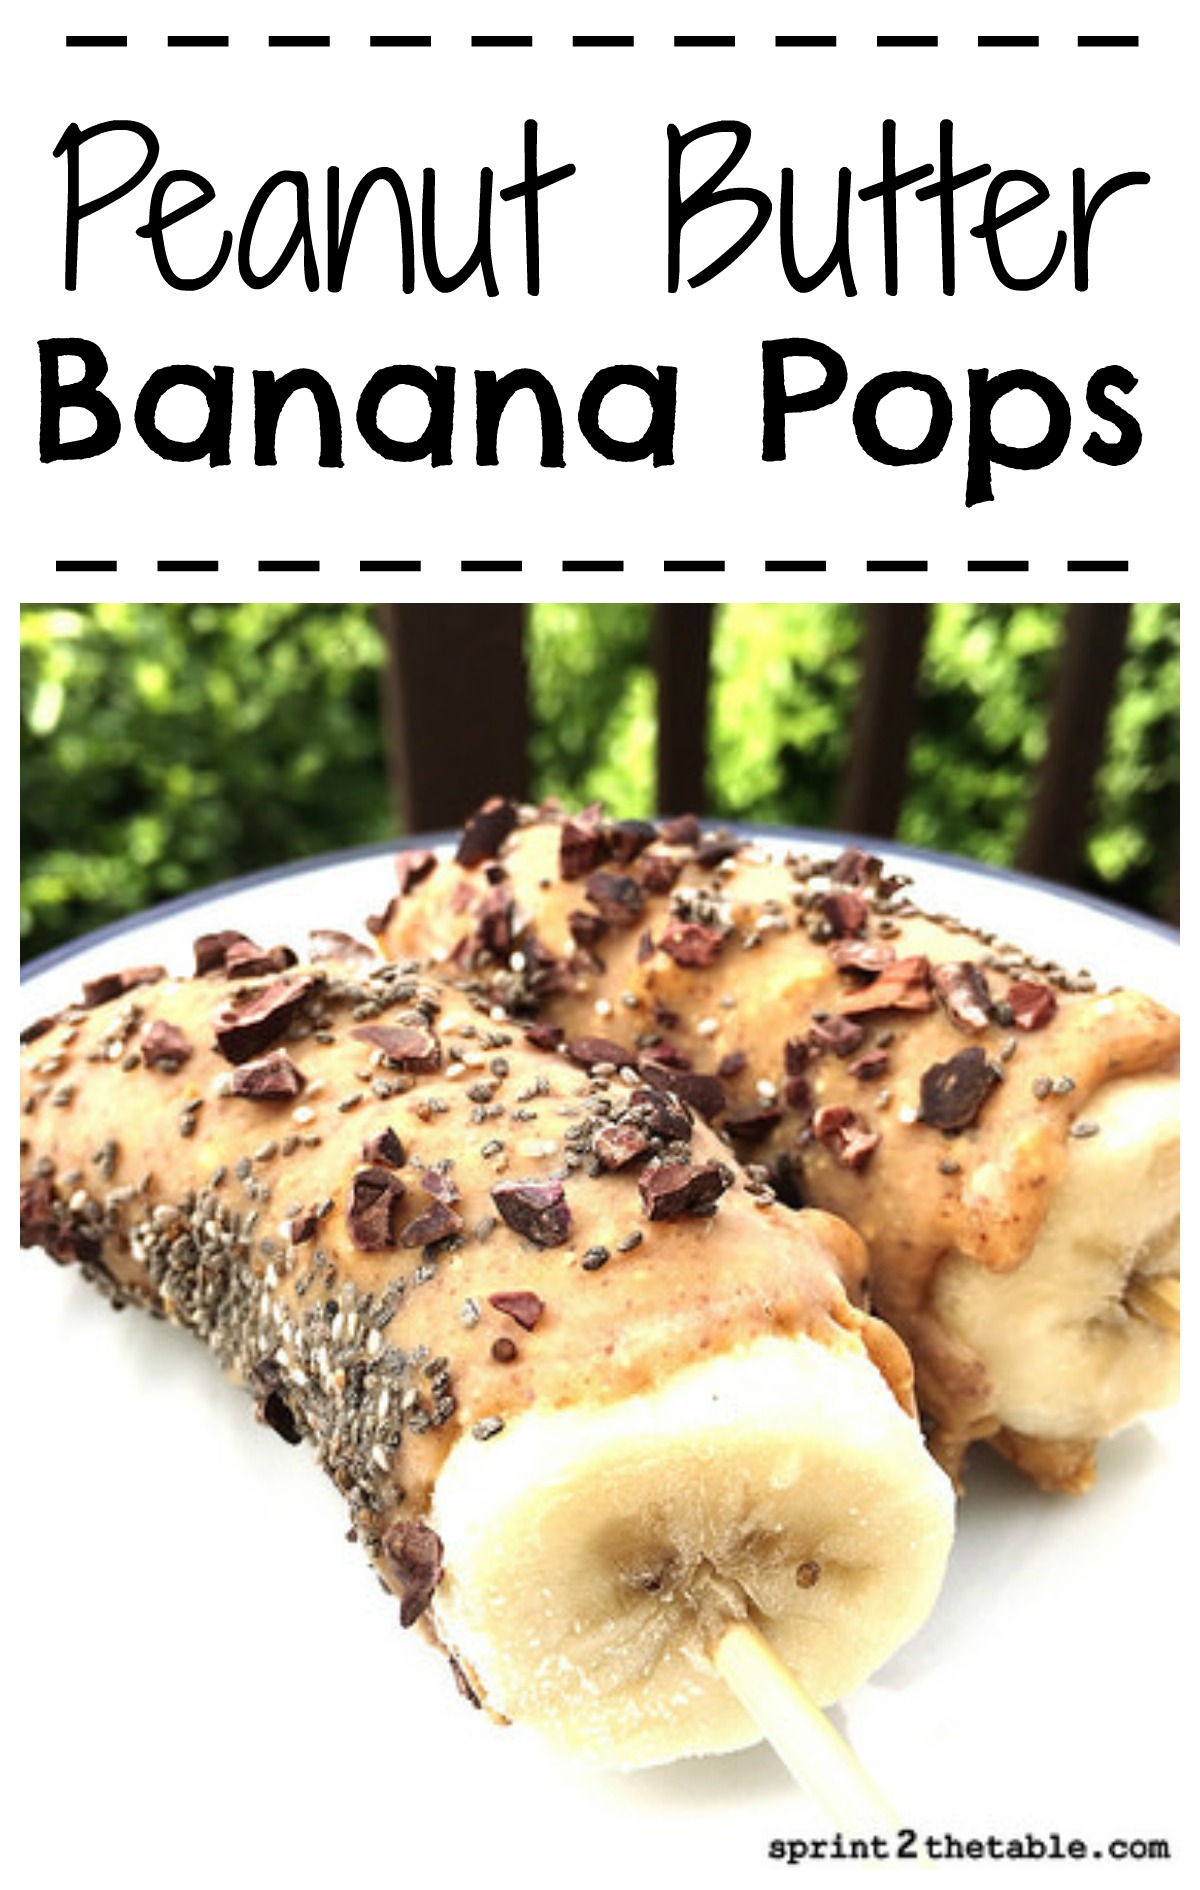 Nut Butter Banana Pops - whether it's a summer afternoon treat or a bachelorette party favor, you really can't go wrong!